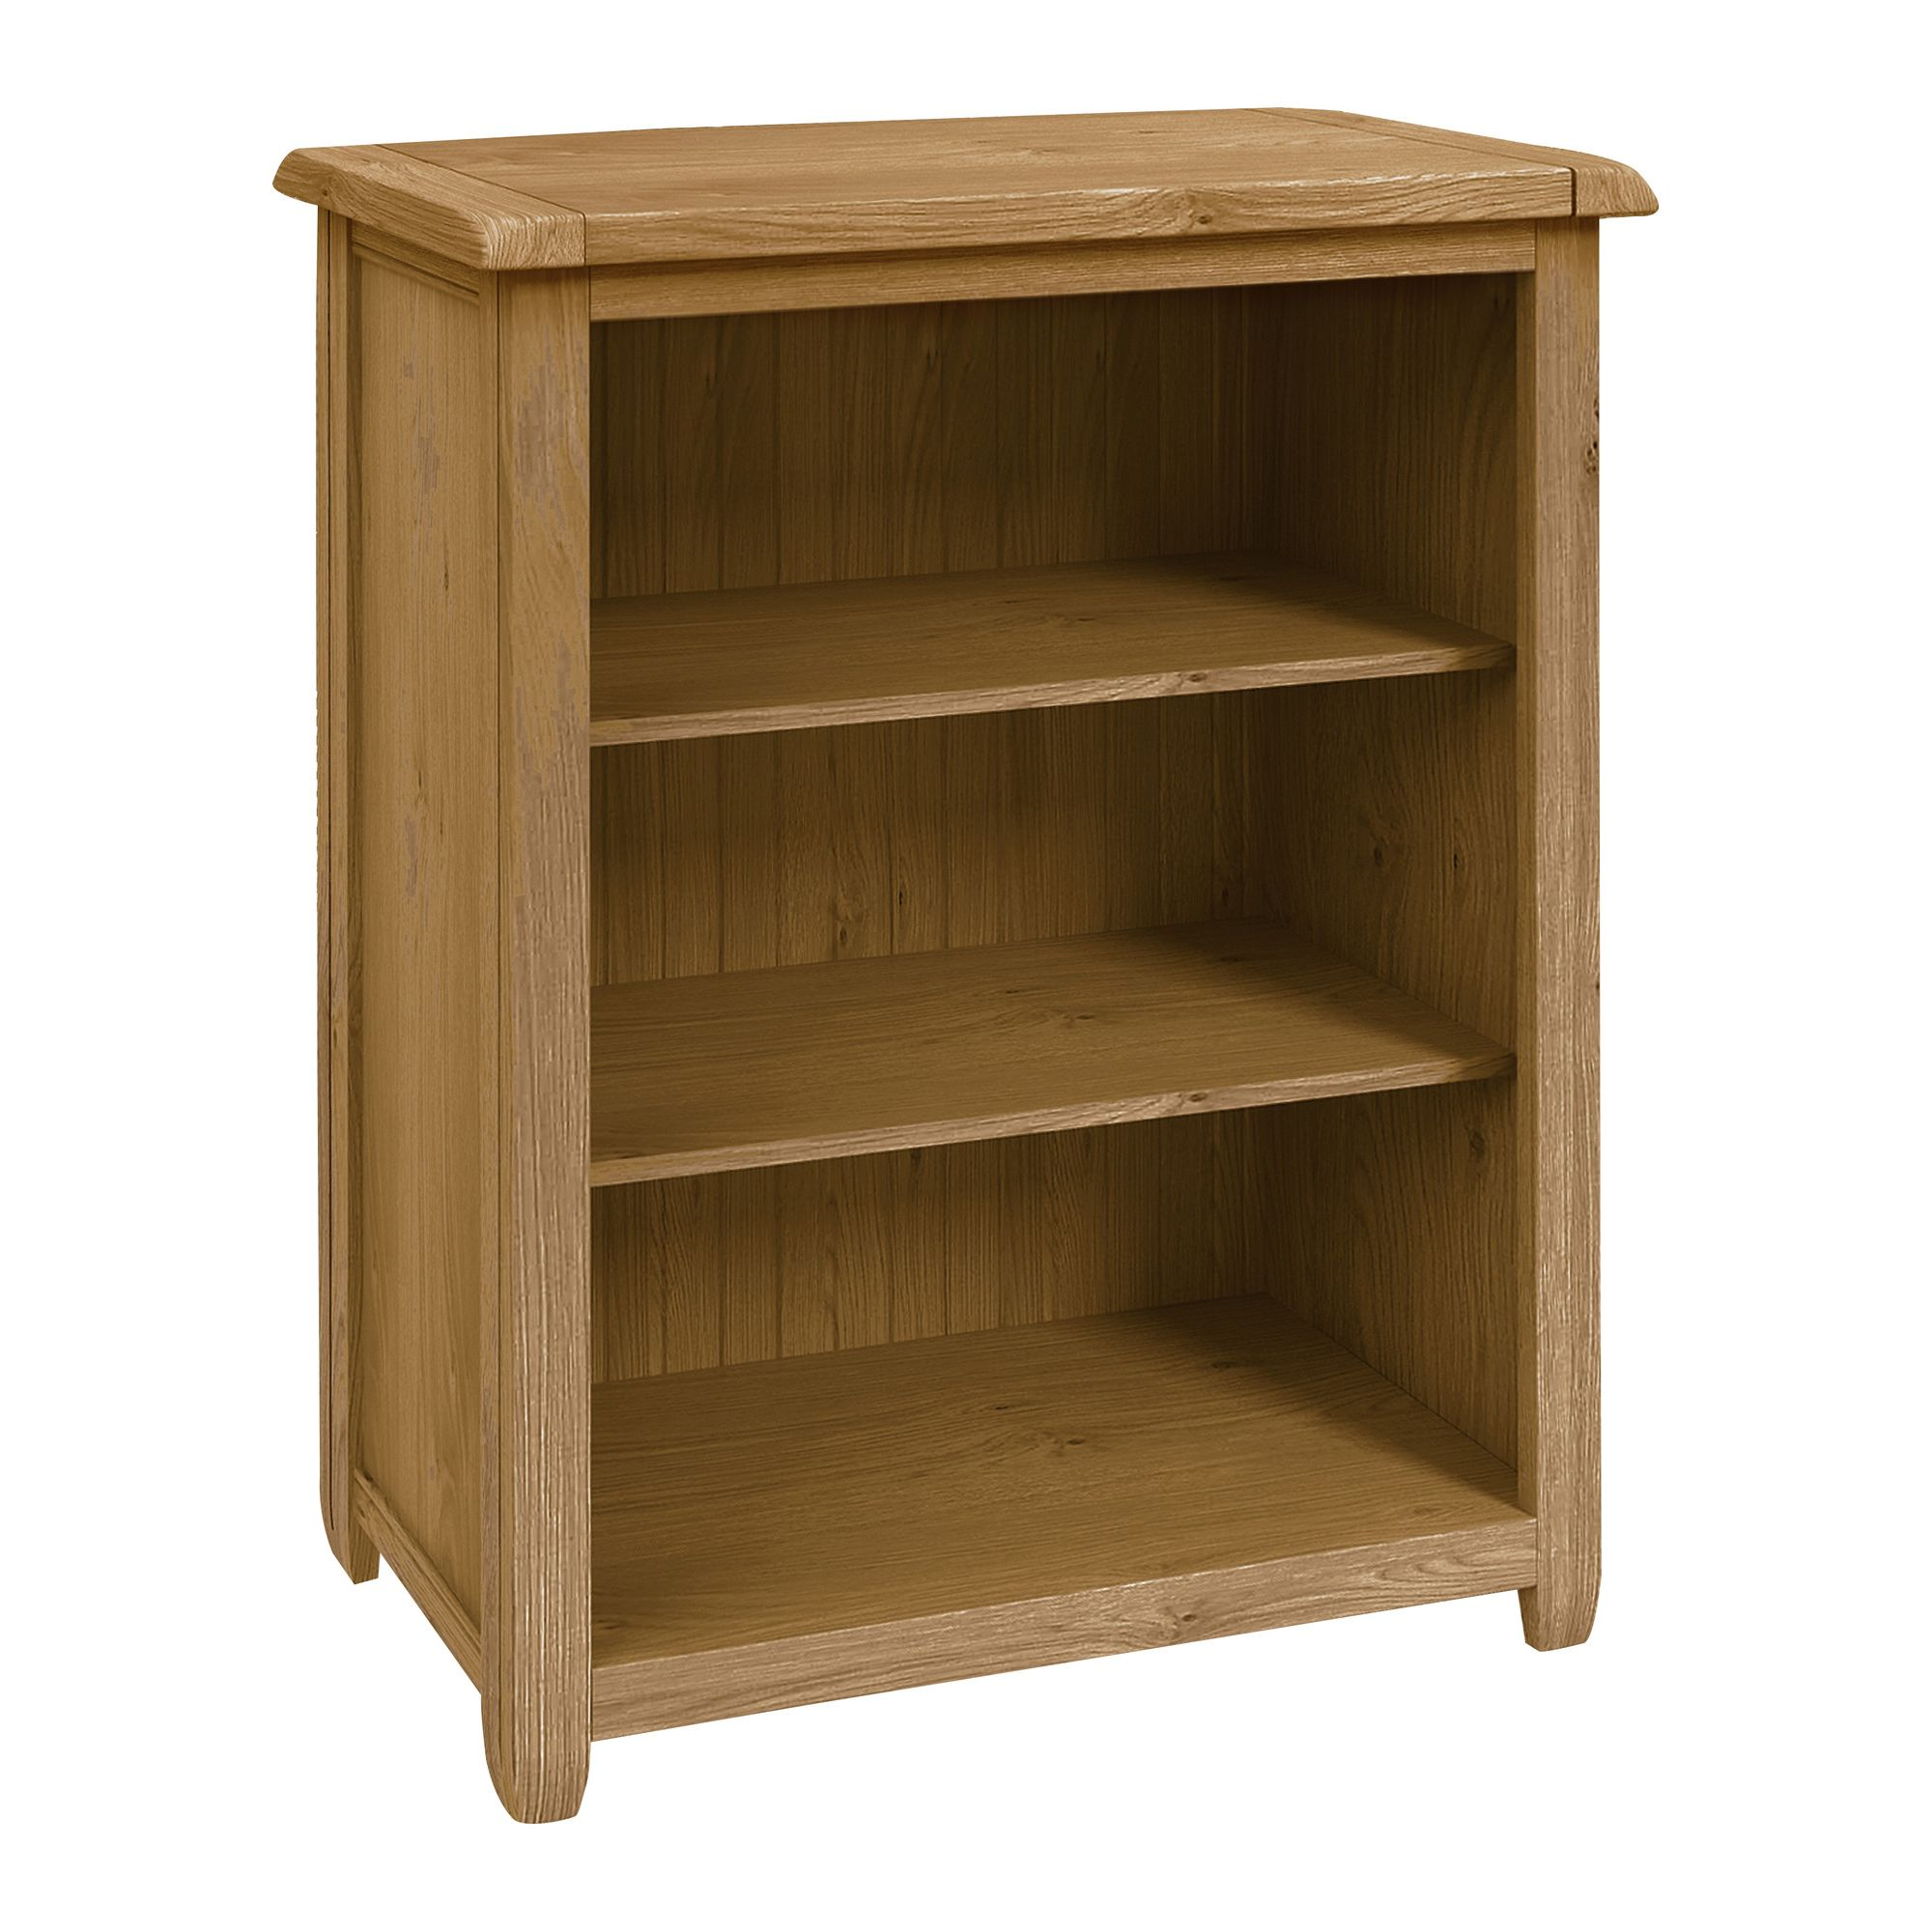 Alterton Furniture Cherry Creek Oak Small Bookcase at Tesco Direct